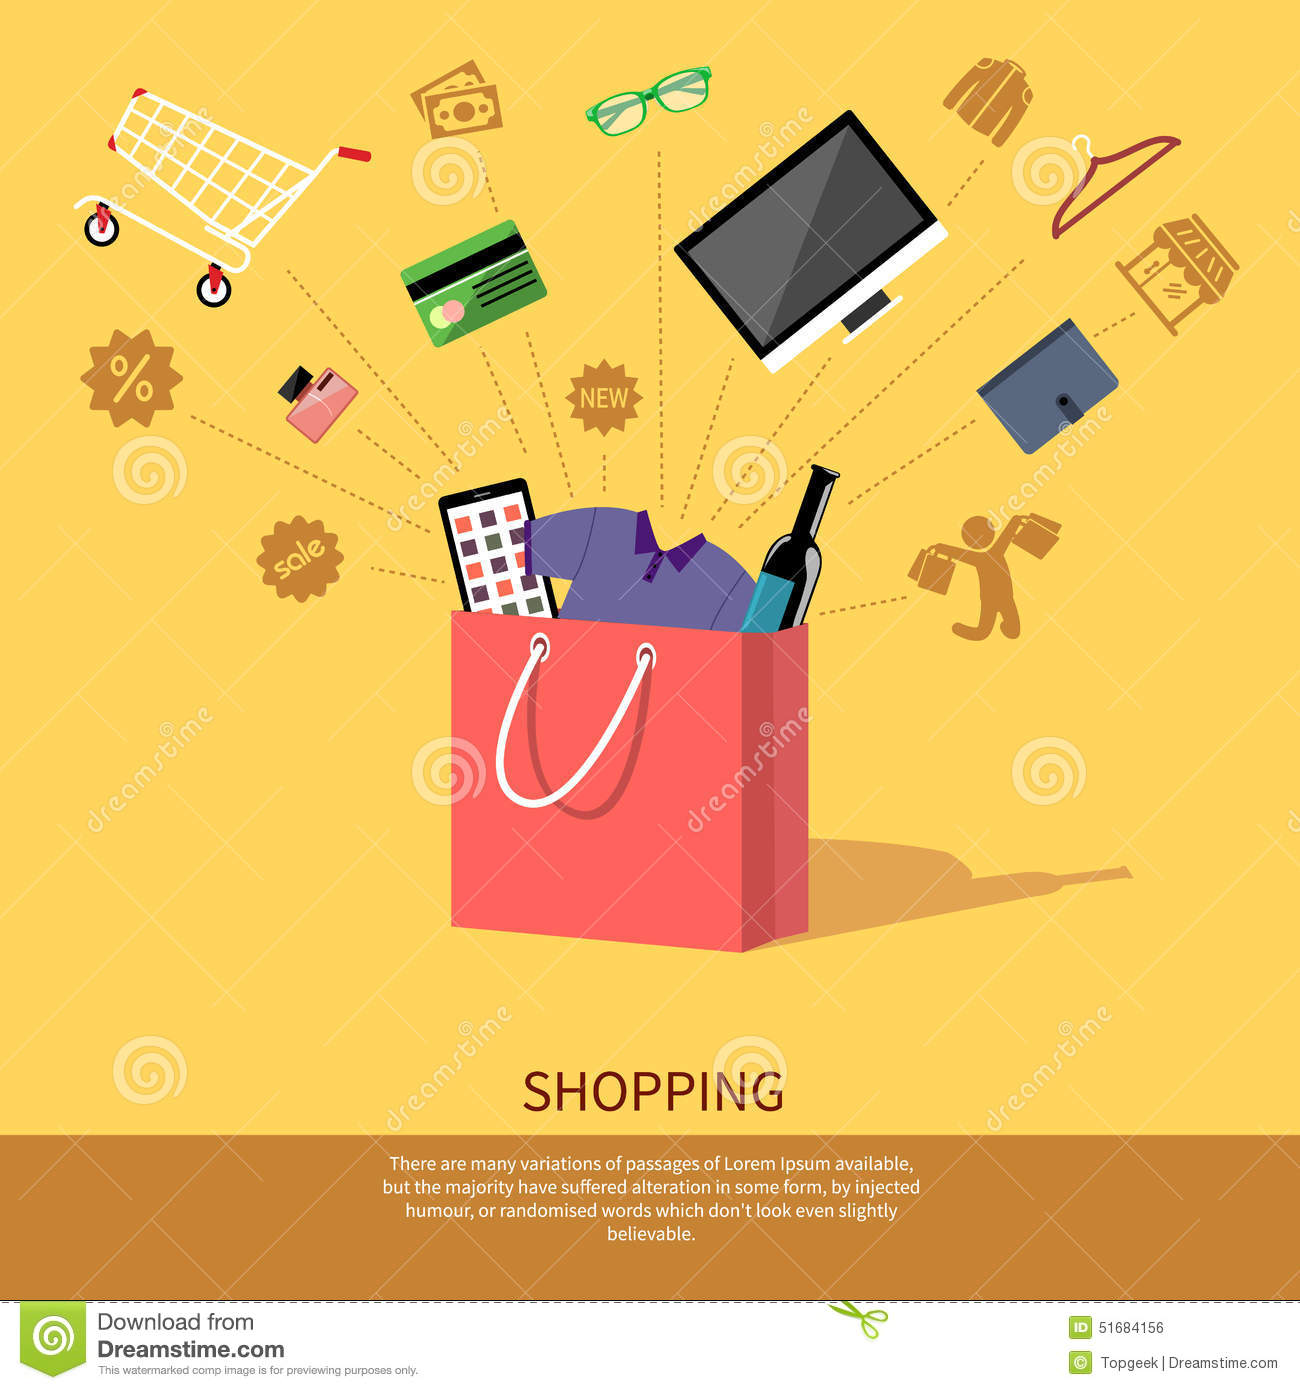 Pros and Cons of Shopping Online